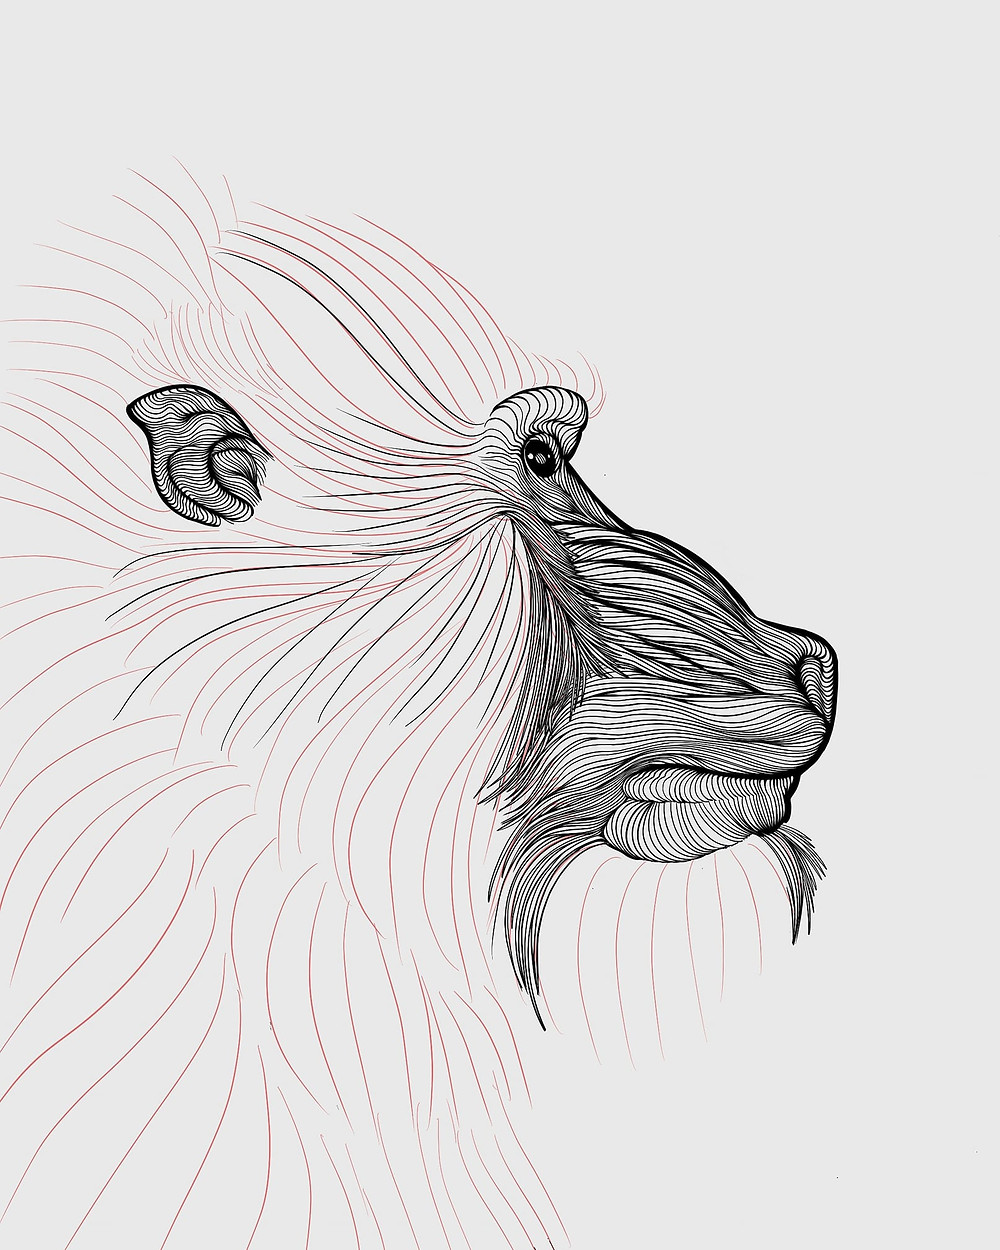 A work in progress of a Mandrill contour drawing.  The muzzle, eyes and ear are complete but the rest of the face is just outline.